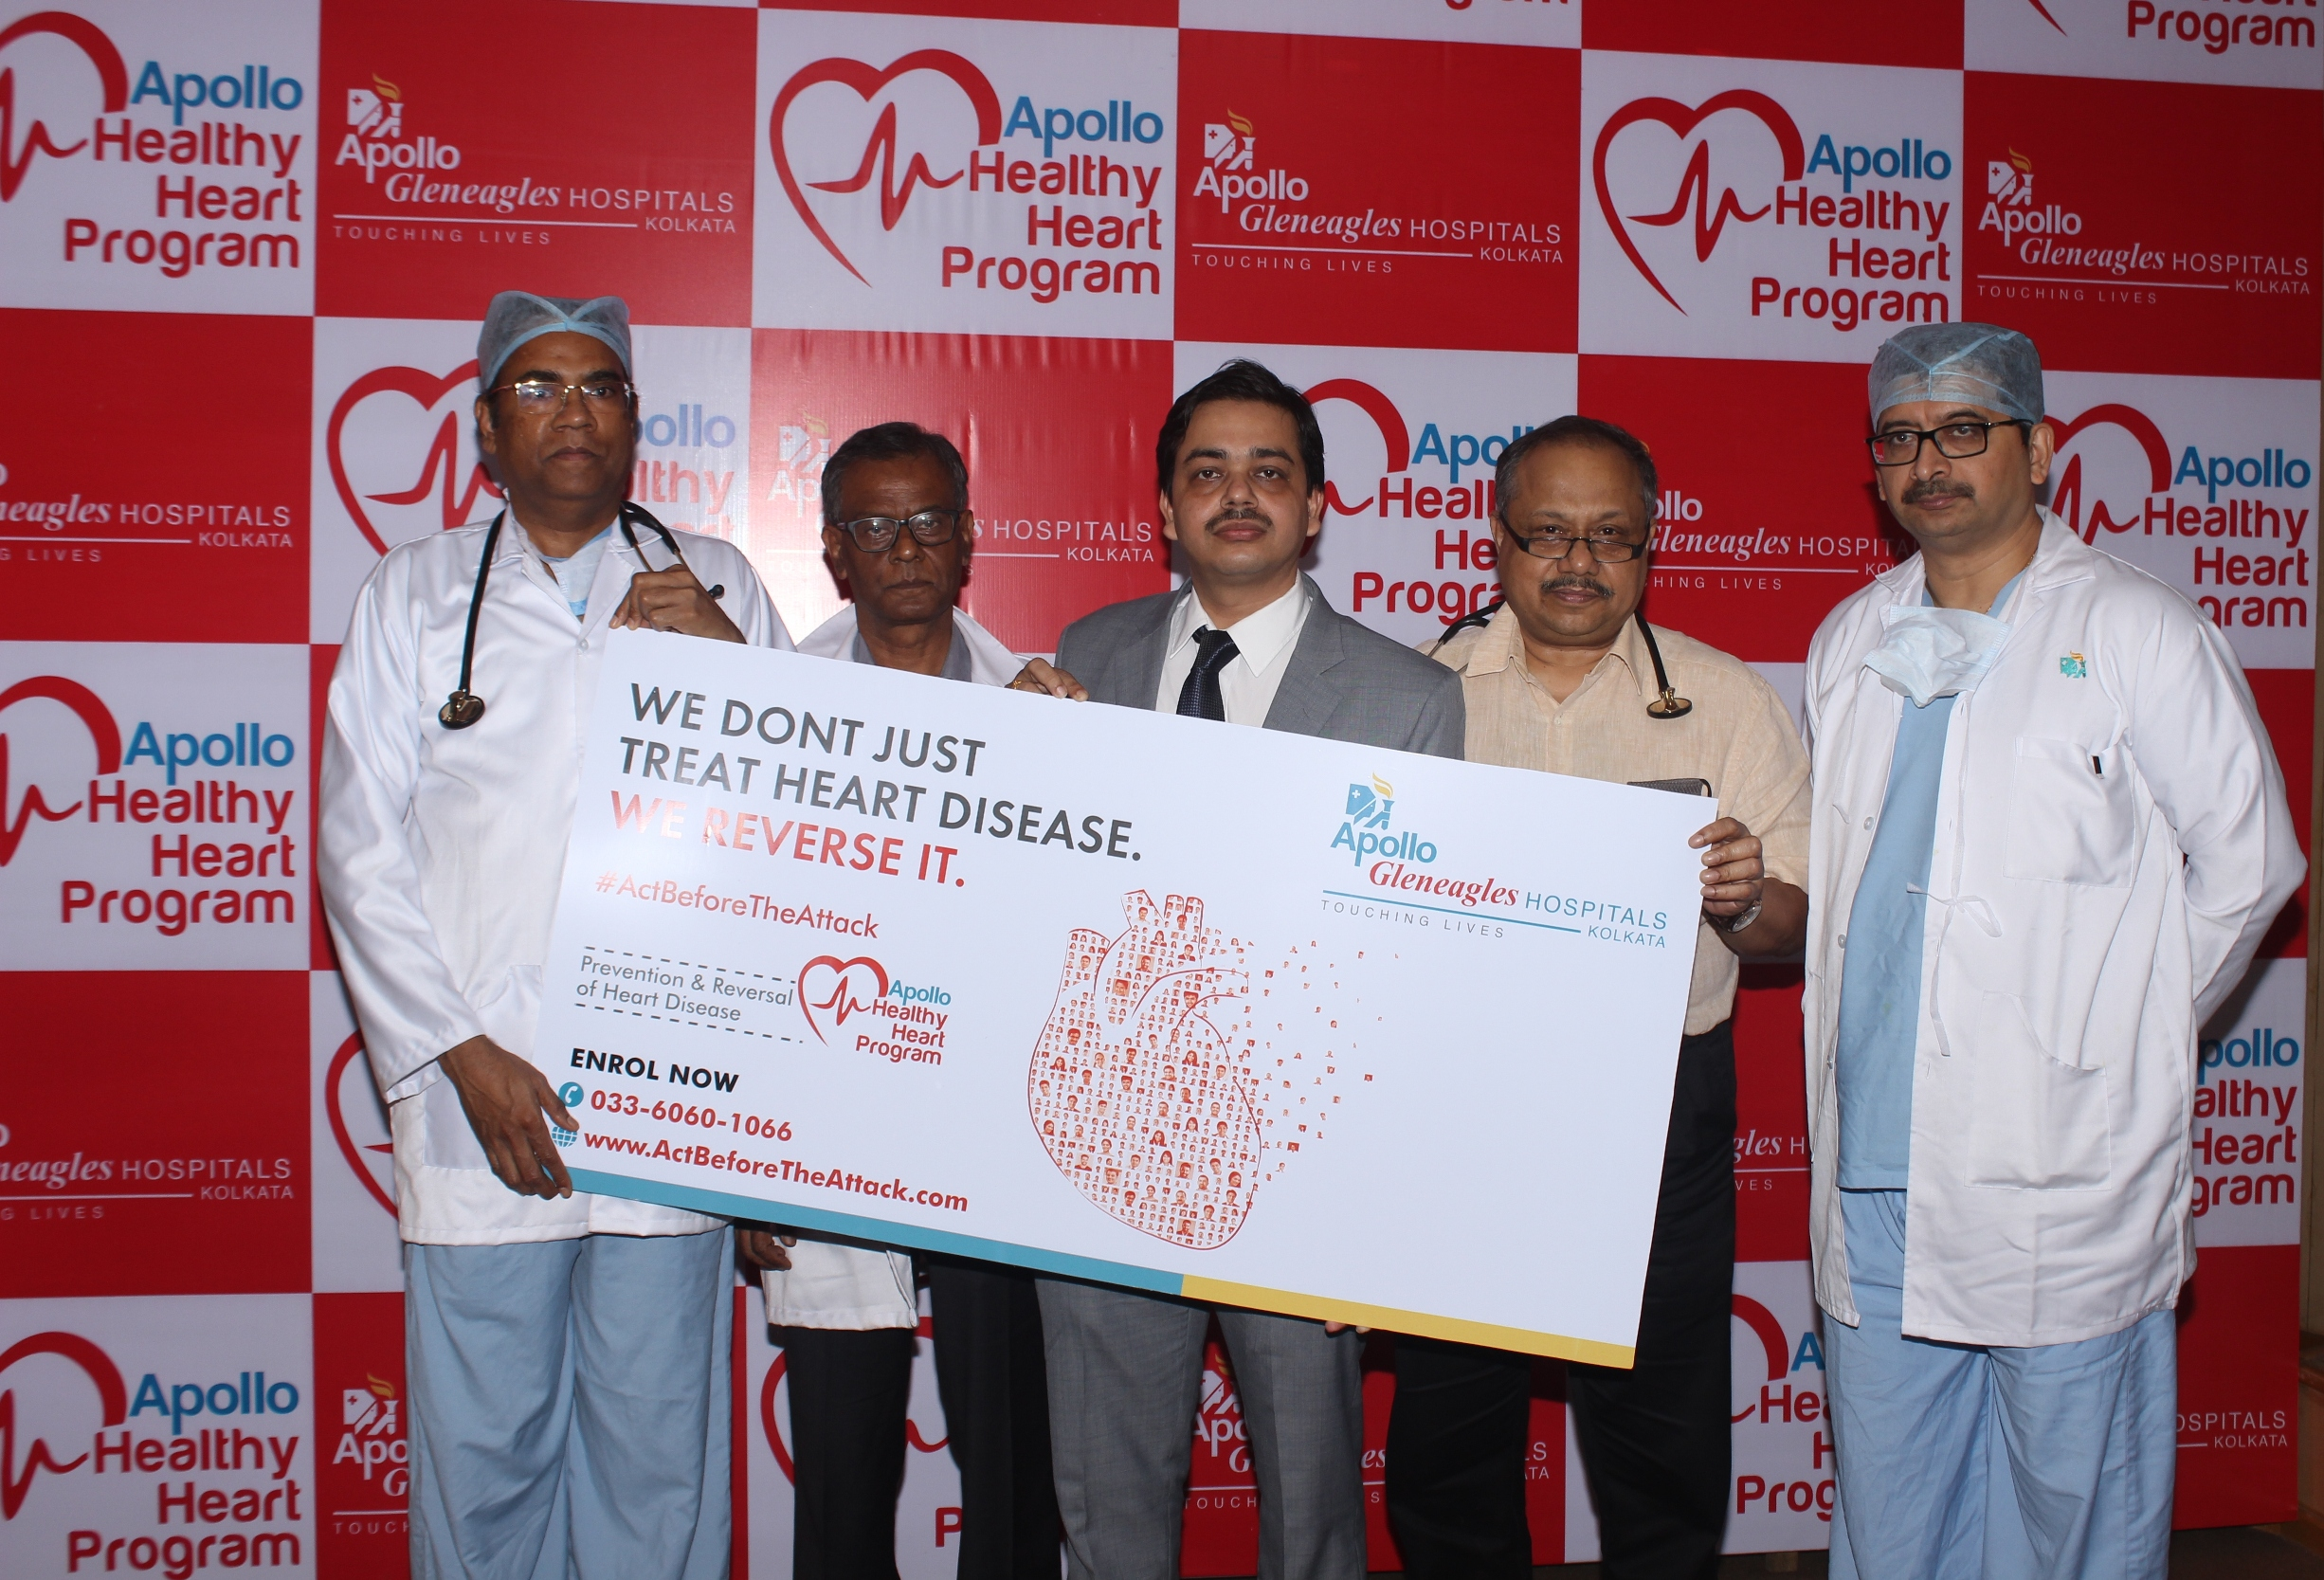 Apollo Gleneagles Hospitals launches Eastern India's first Heart Disease Prevention & Reversal Program